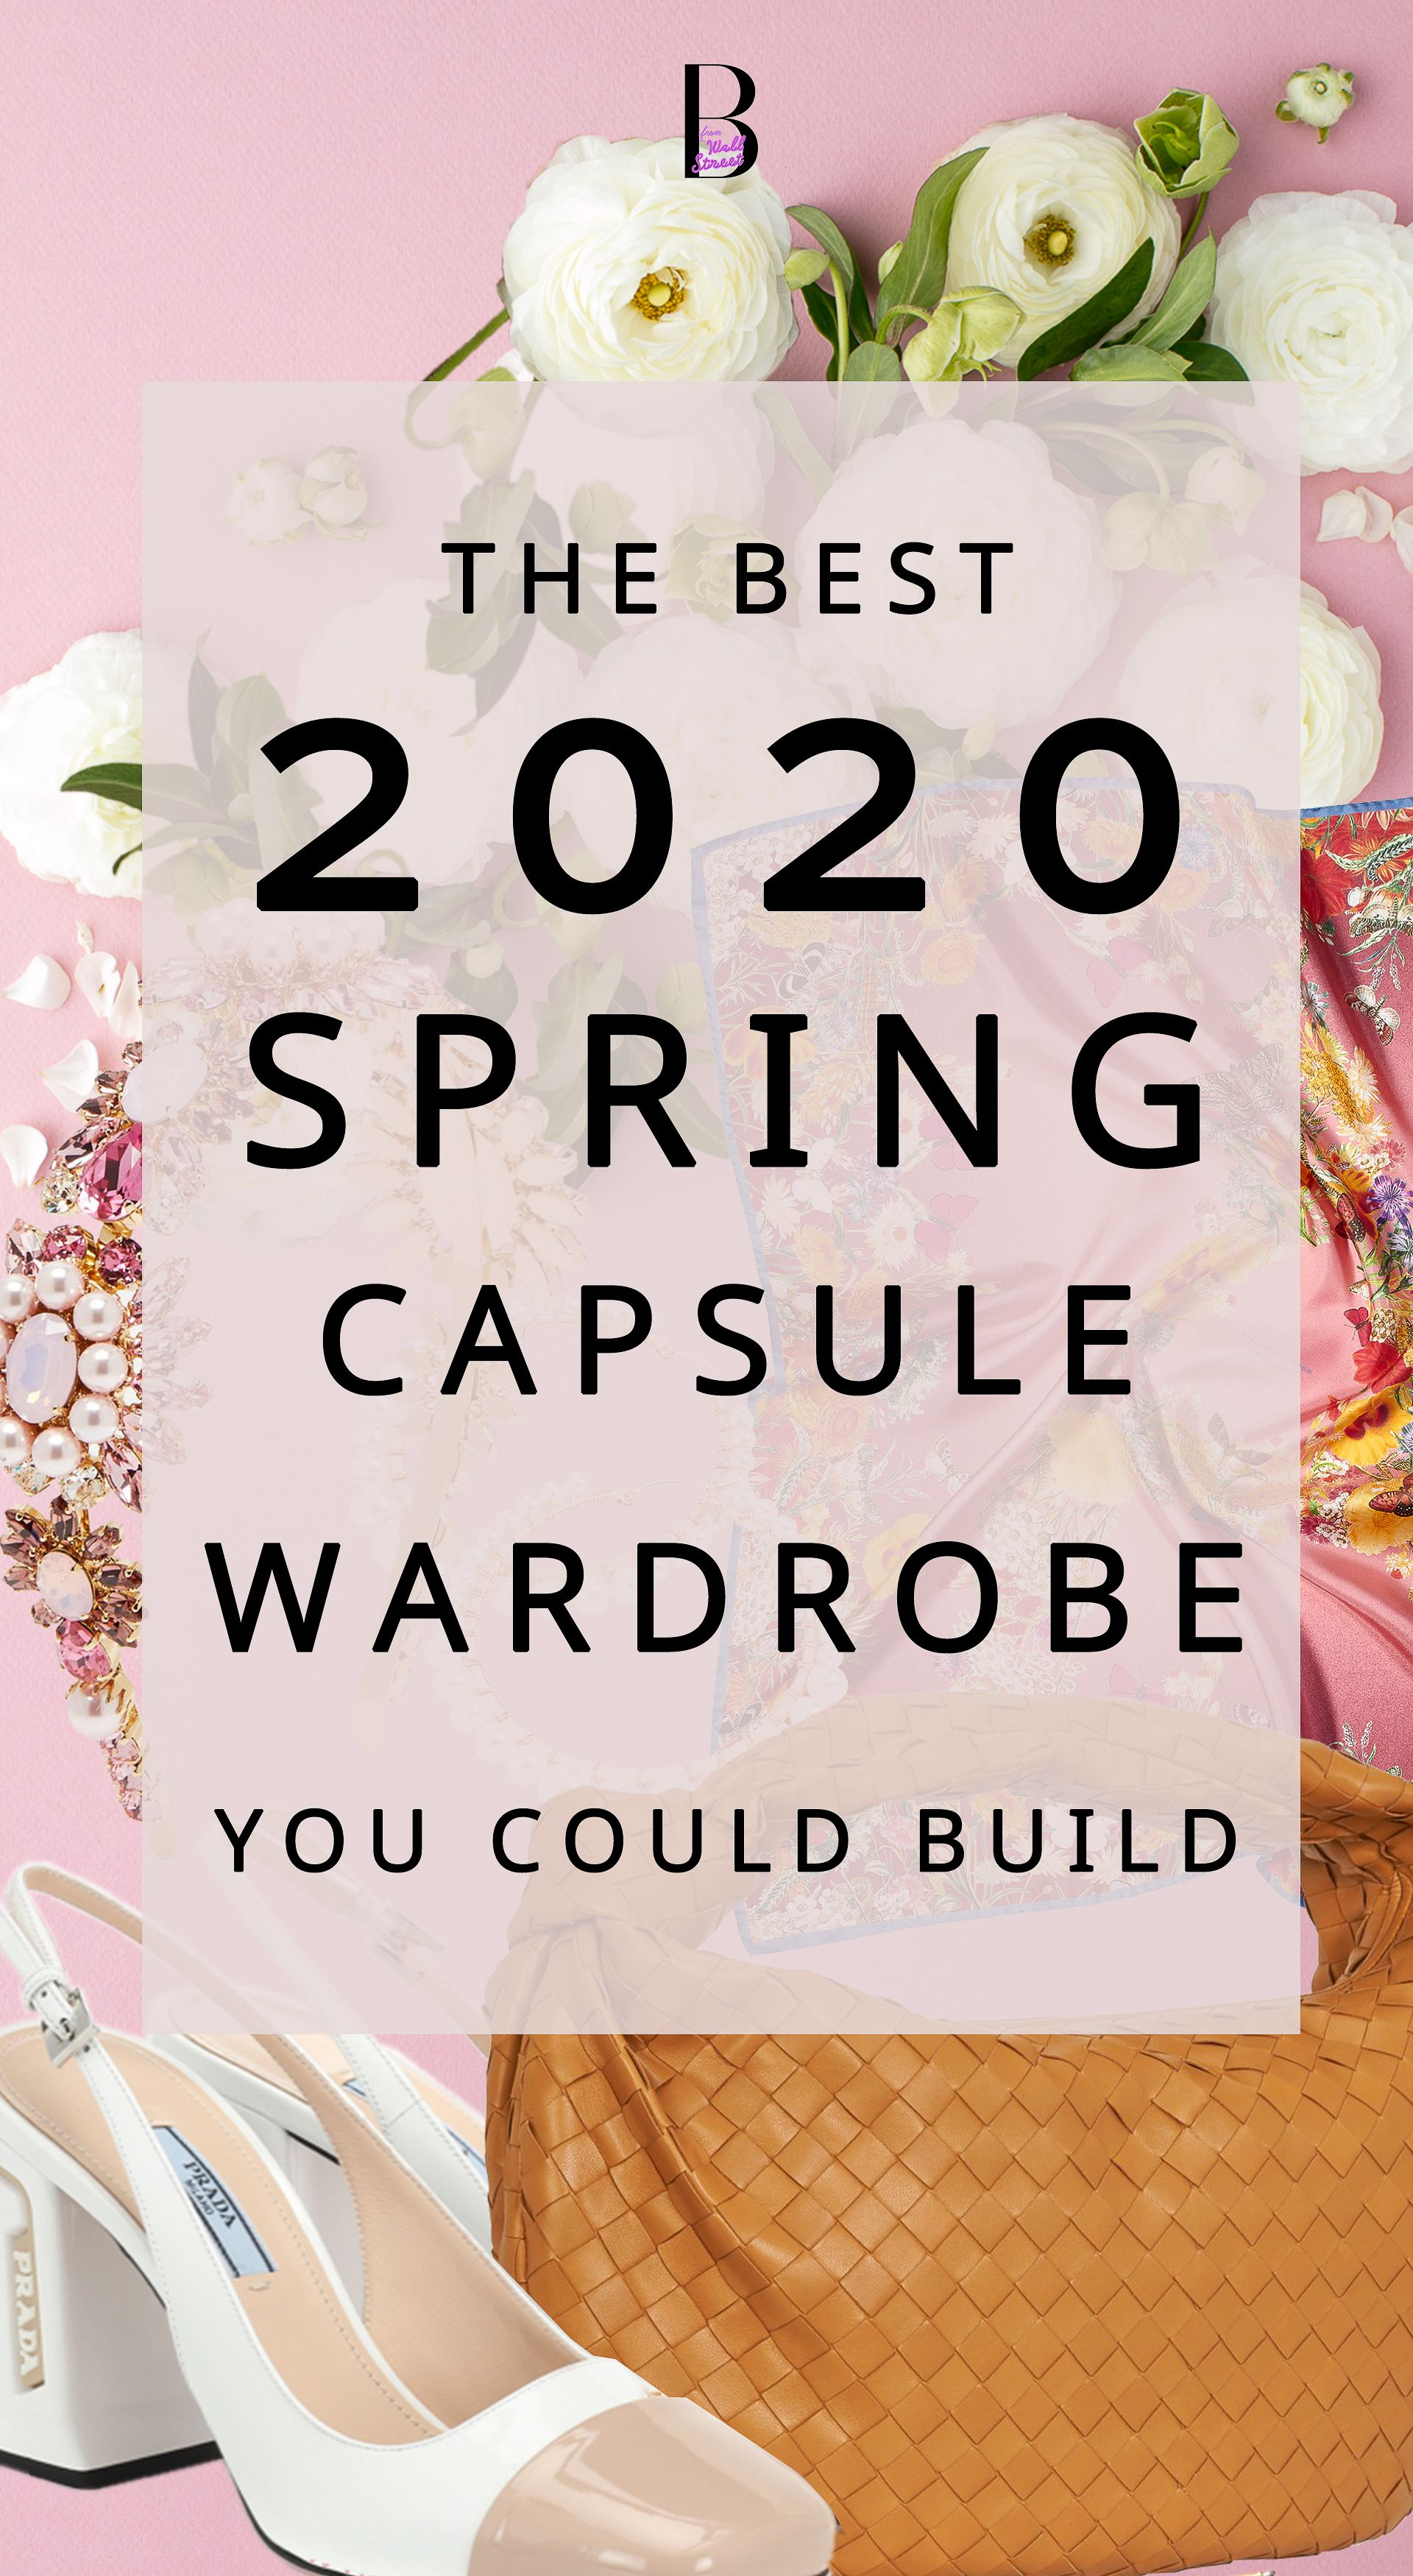 How to Build a Capsule Wardrobe for Spring Summer 2020